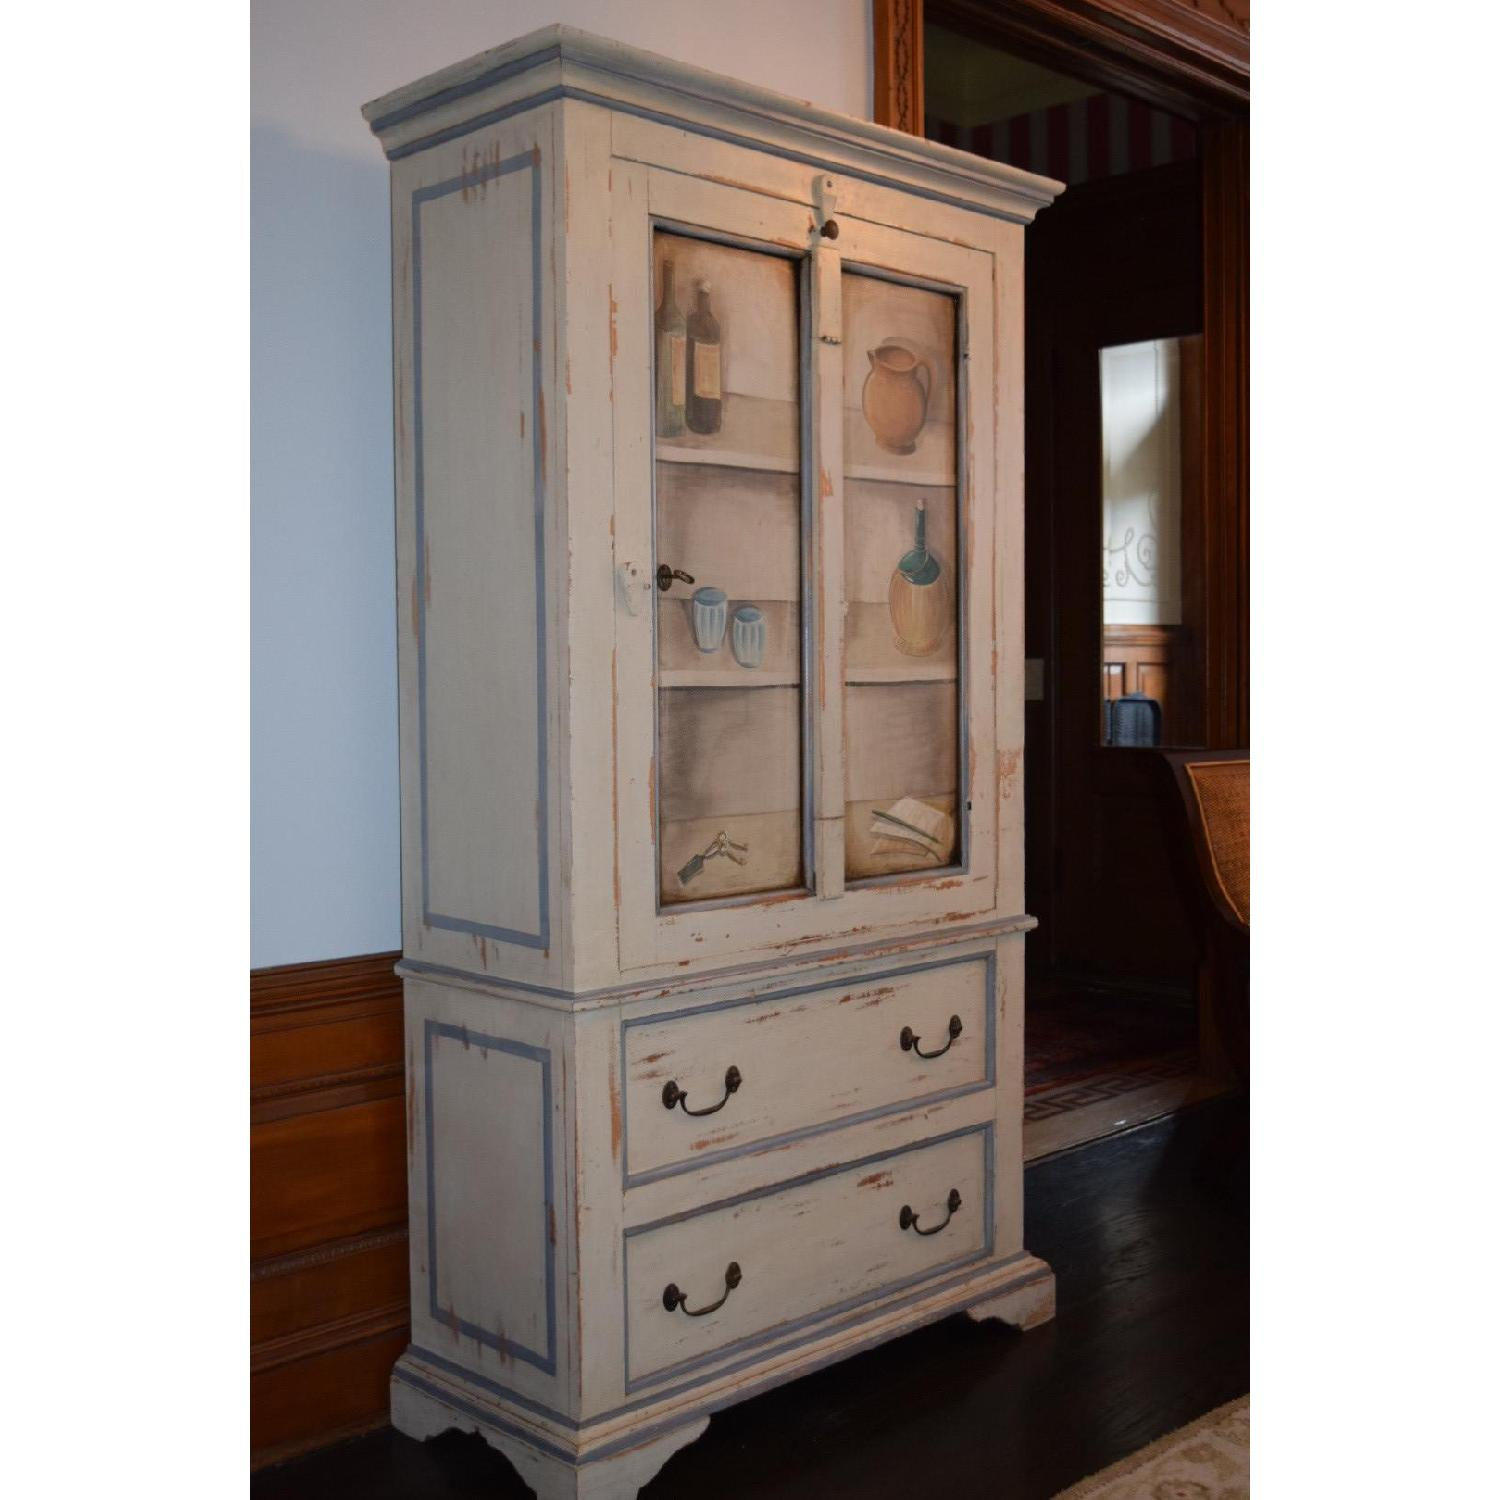 Shabby Chic Hand-Painted Distressed Cabinet - image-6